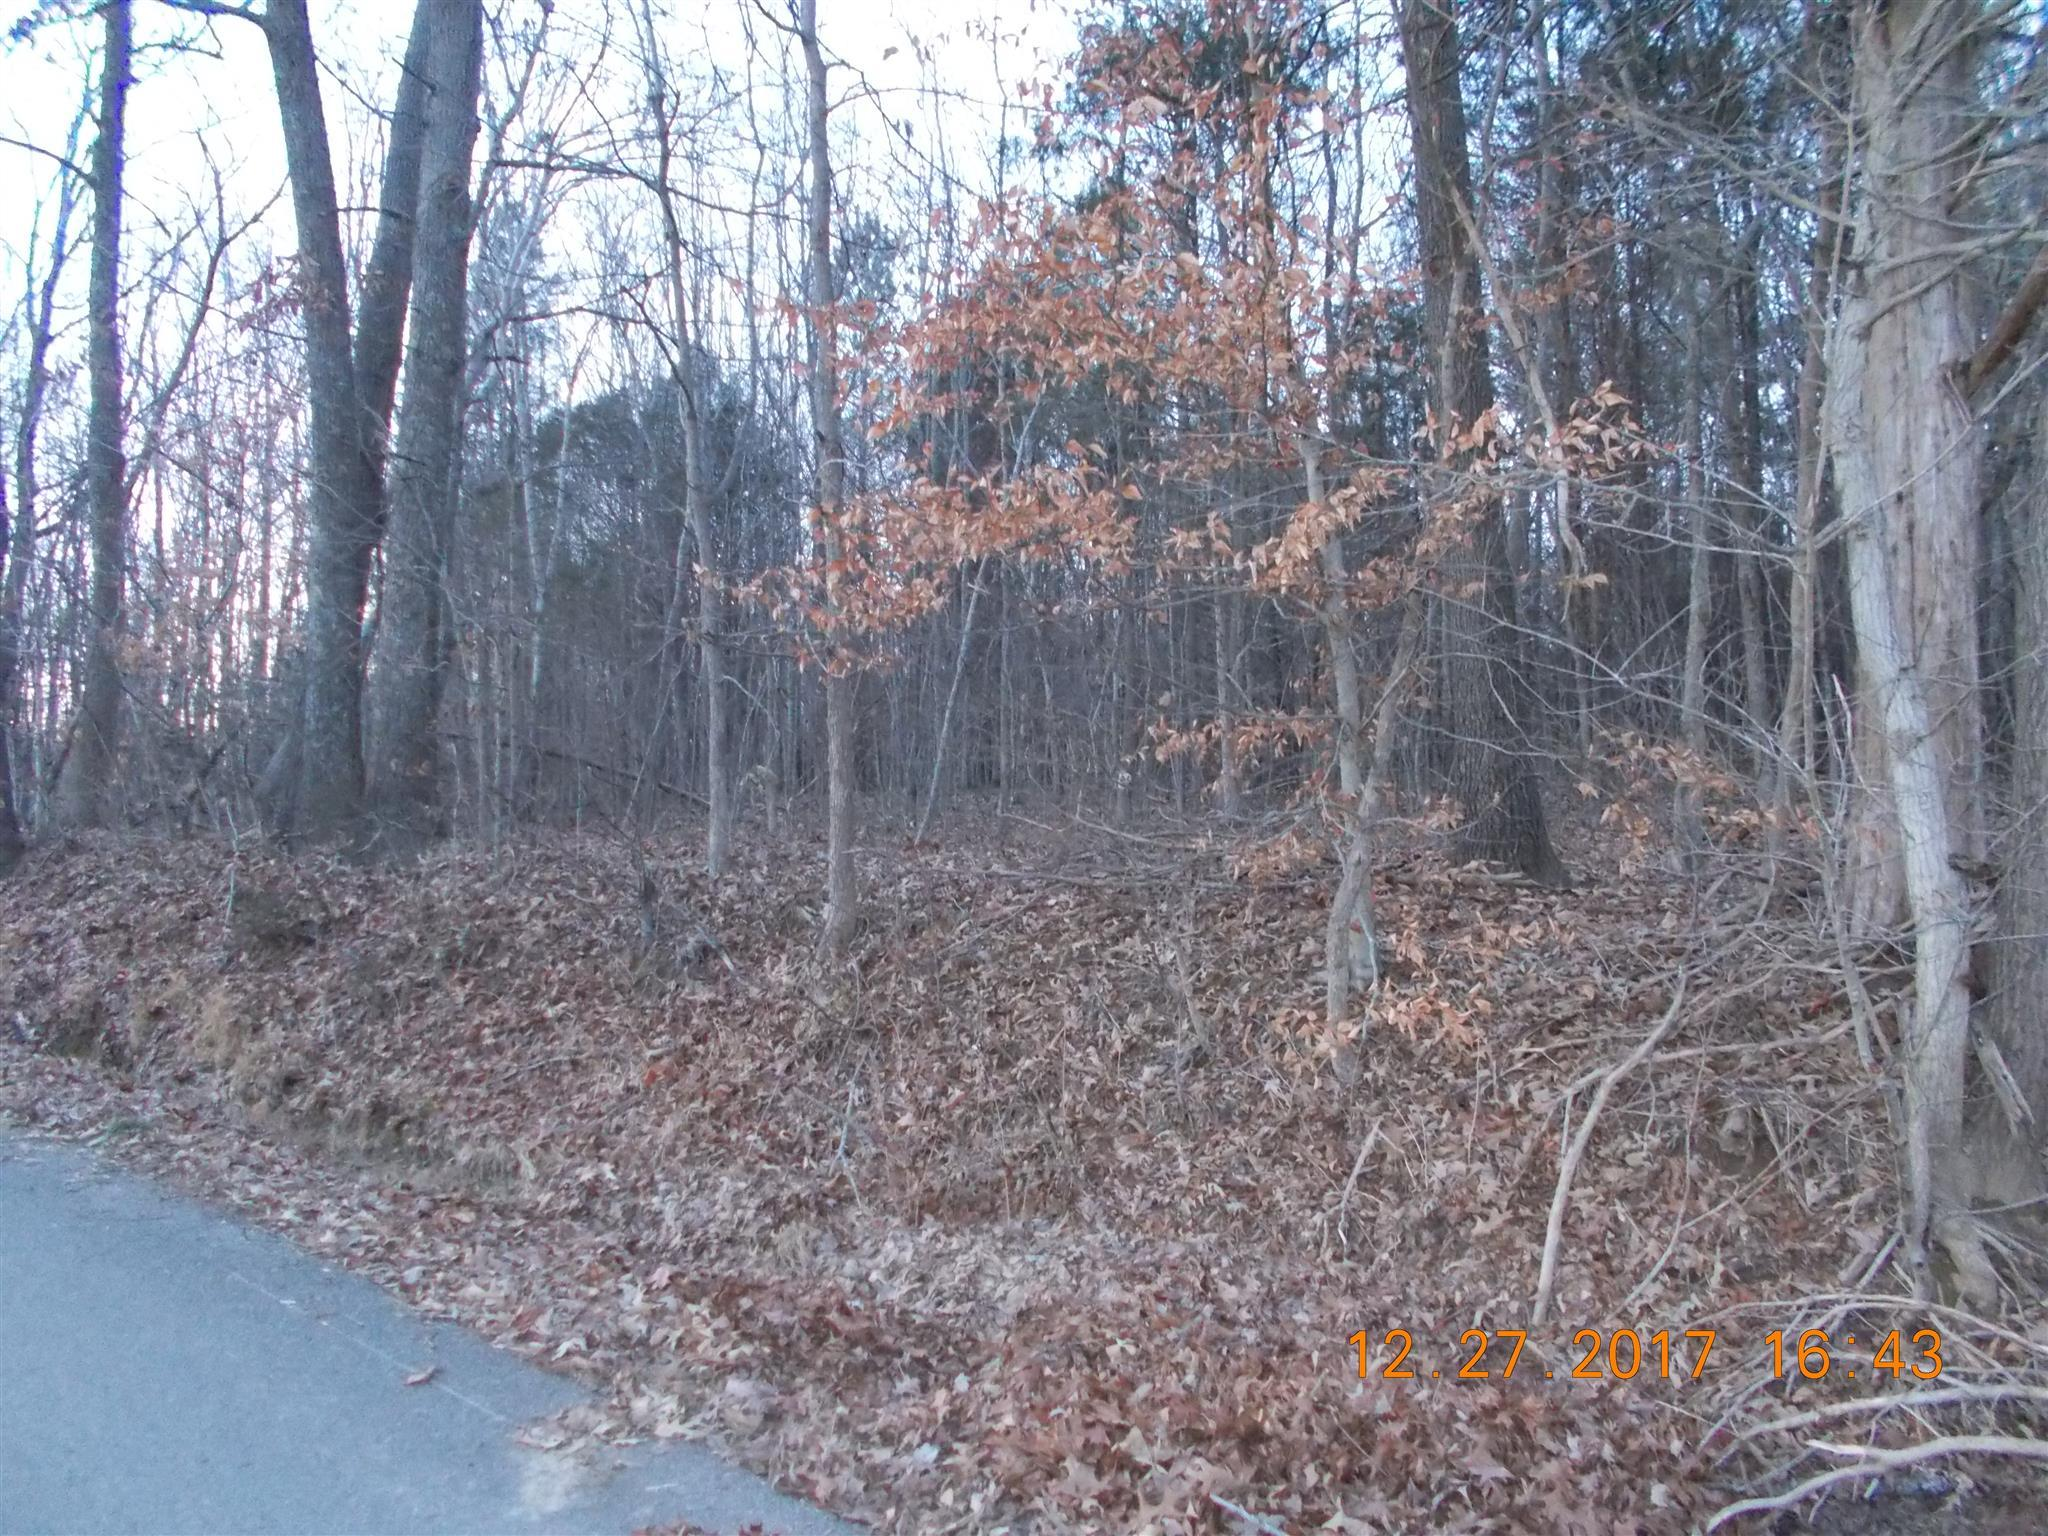 Commerical Property For Sale In Coopertown Tn